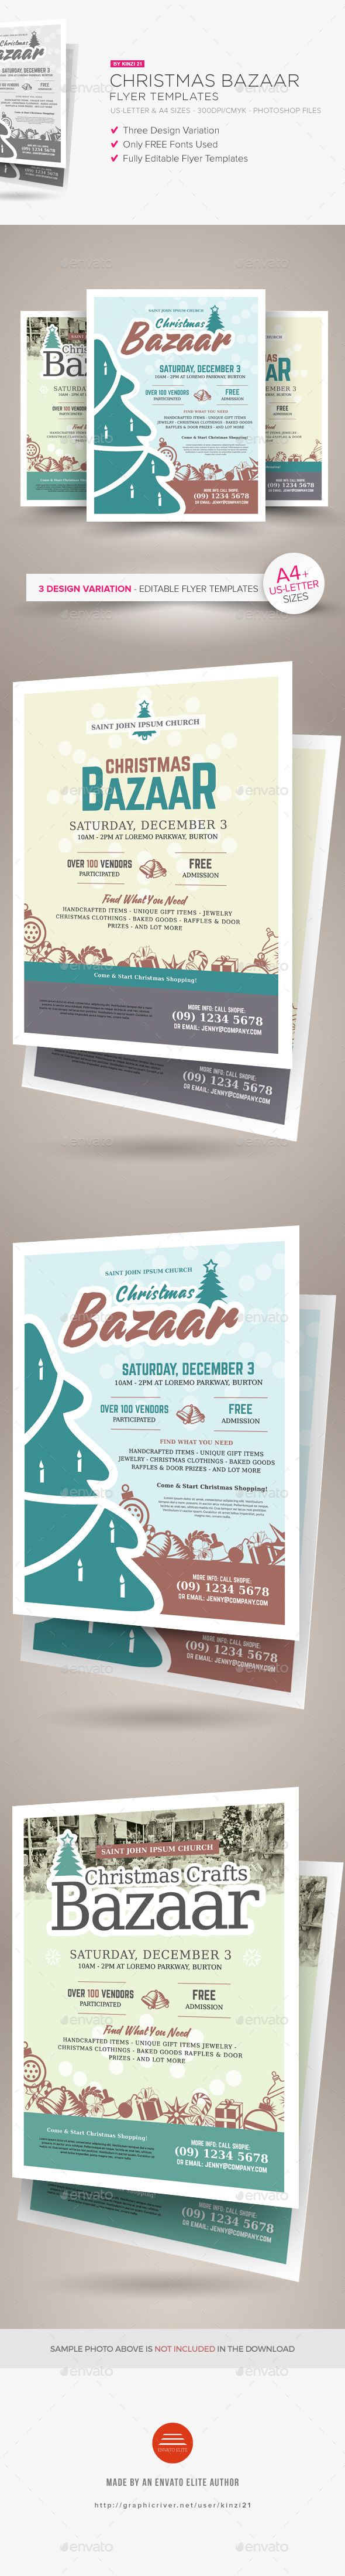 Christmas Bazaar Flyer Templates | Flyer template, Craft fairs and ...